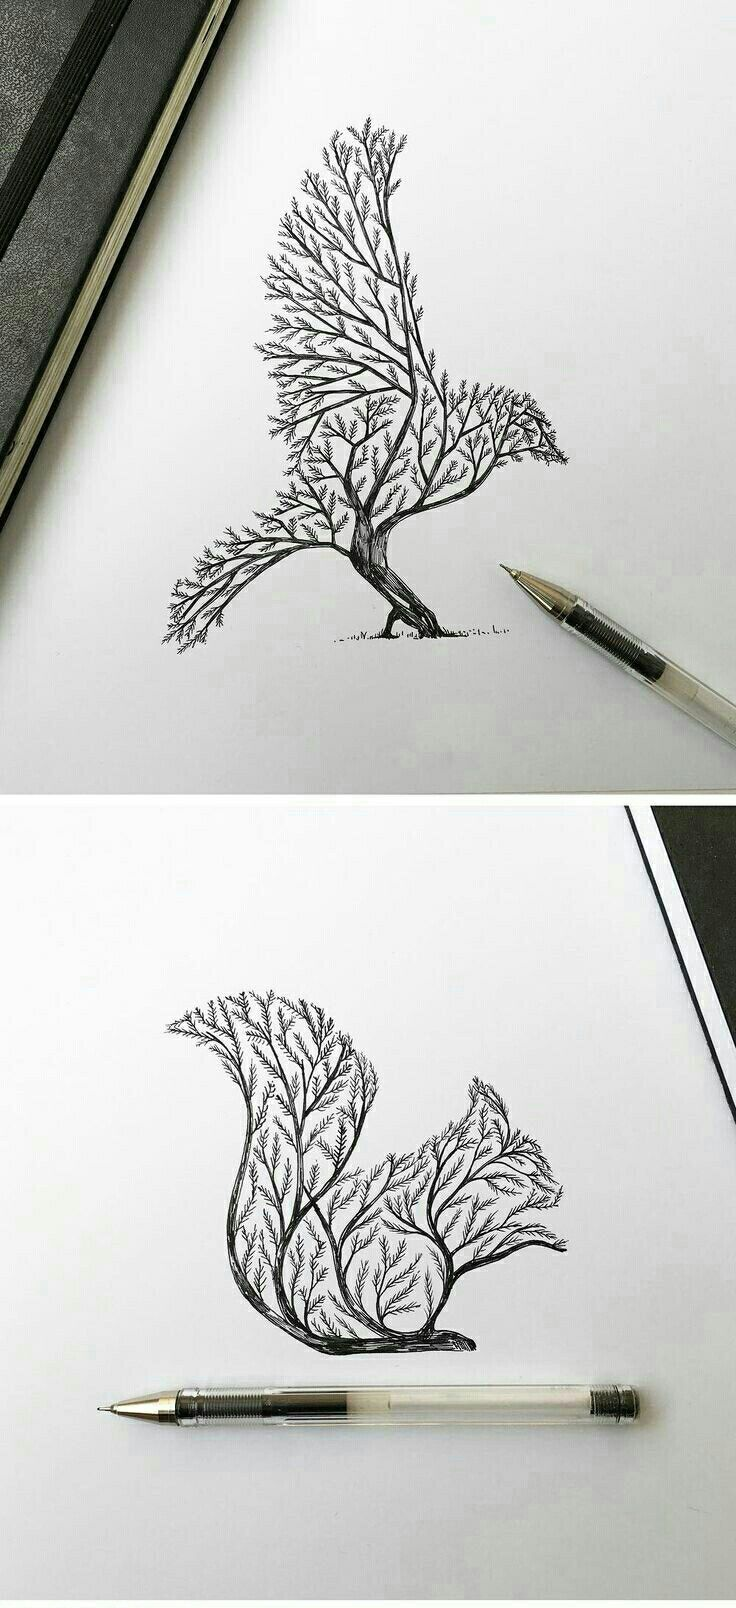 Tükenmez kalem art cute drawings really cool drawings pencil drawings nature drawing